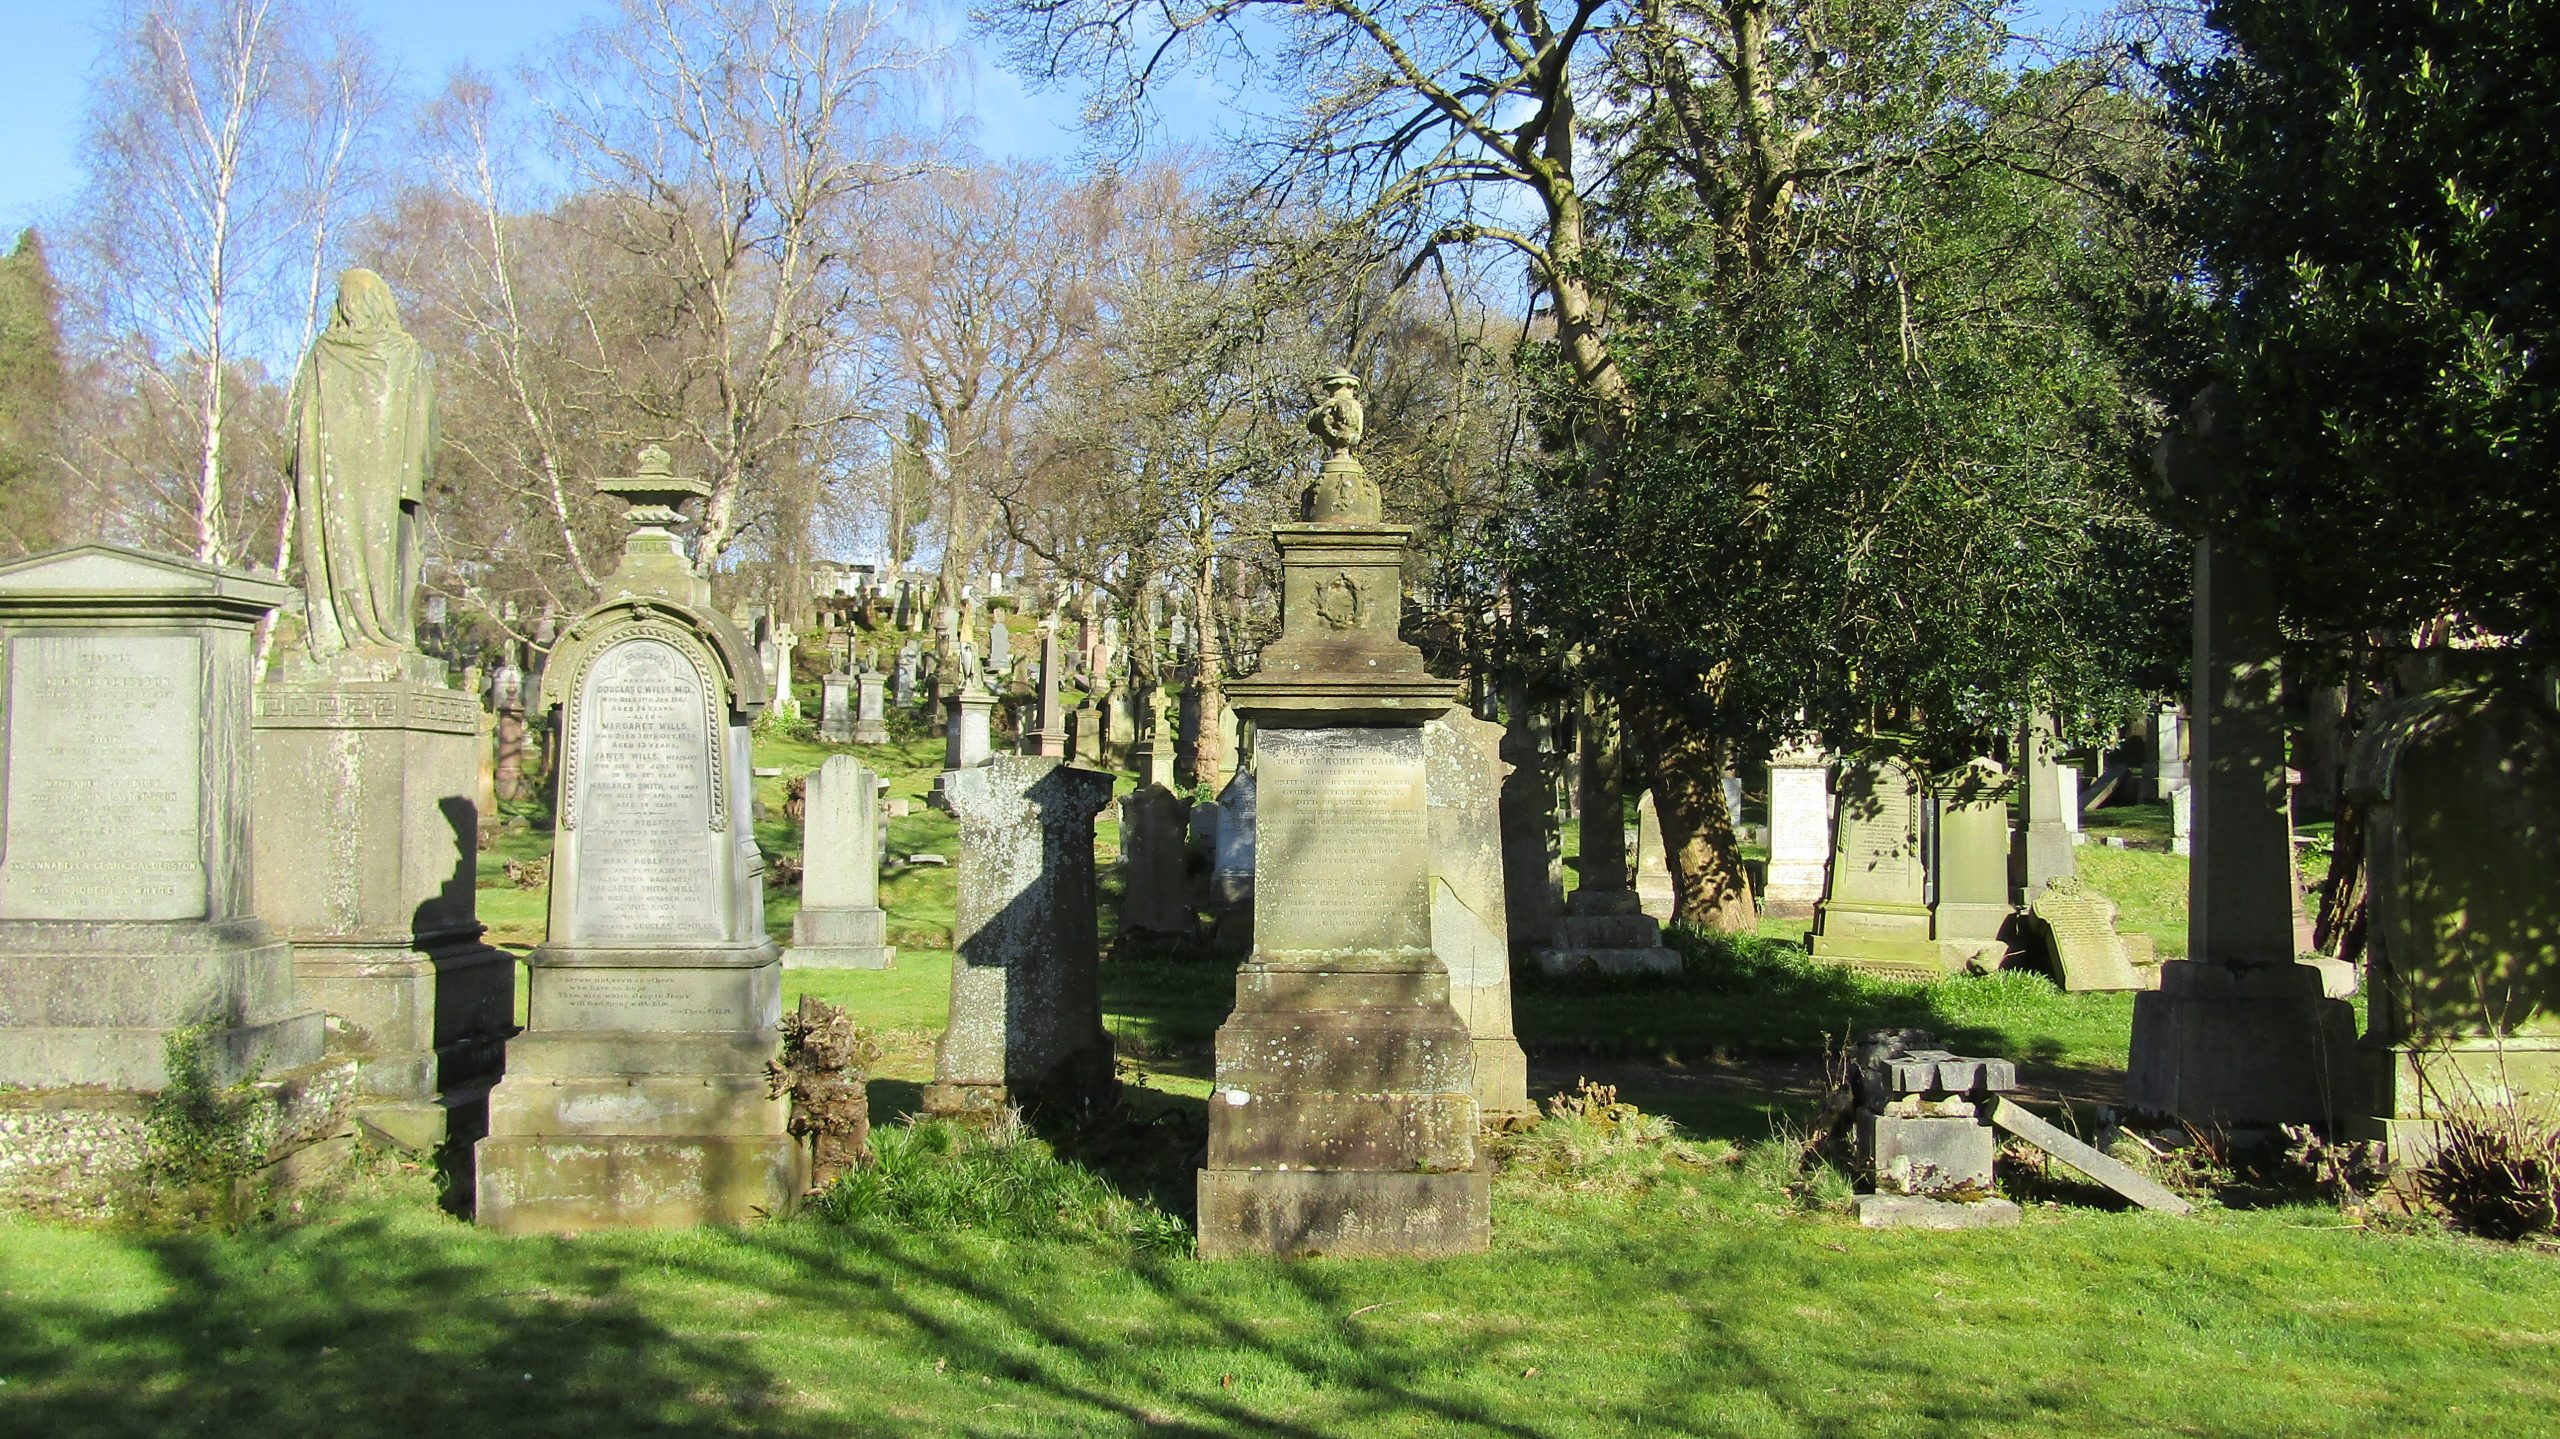 Woodside Cemetery Heritage Walk - Sat 24th April 1pm